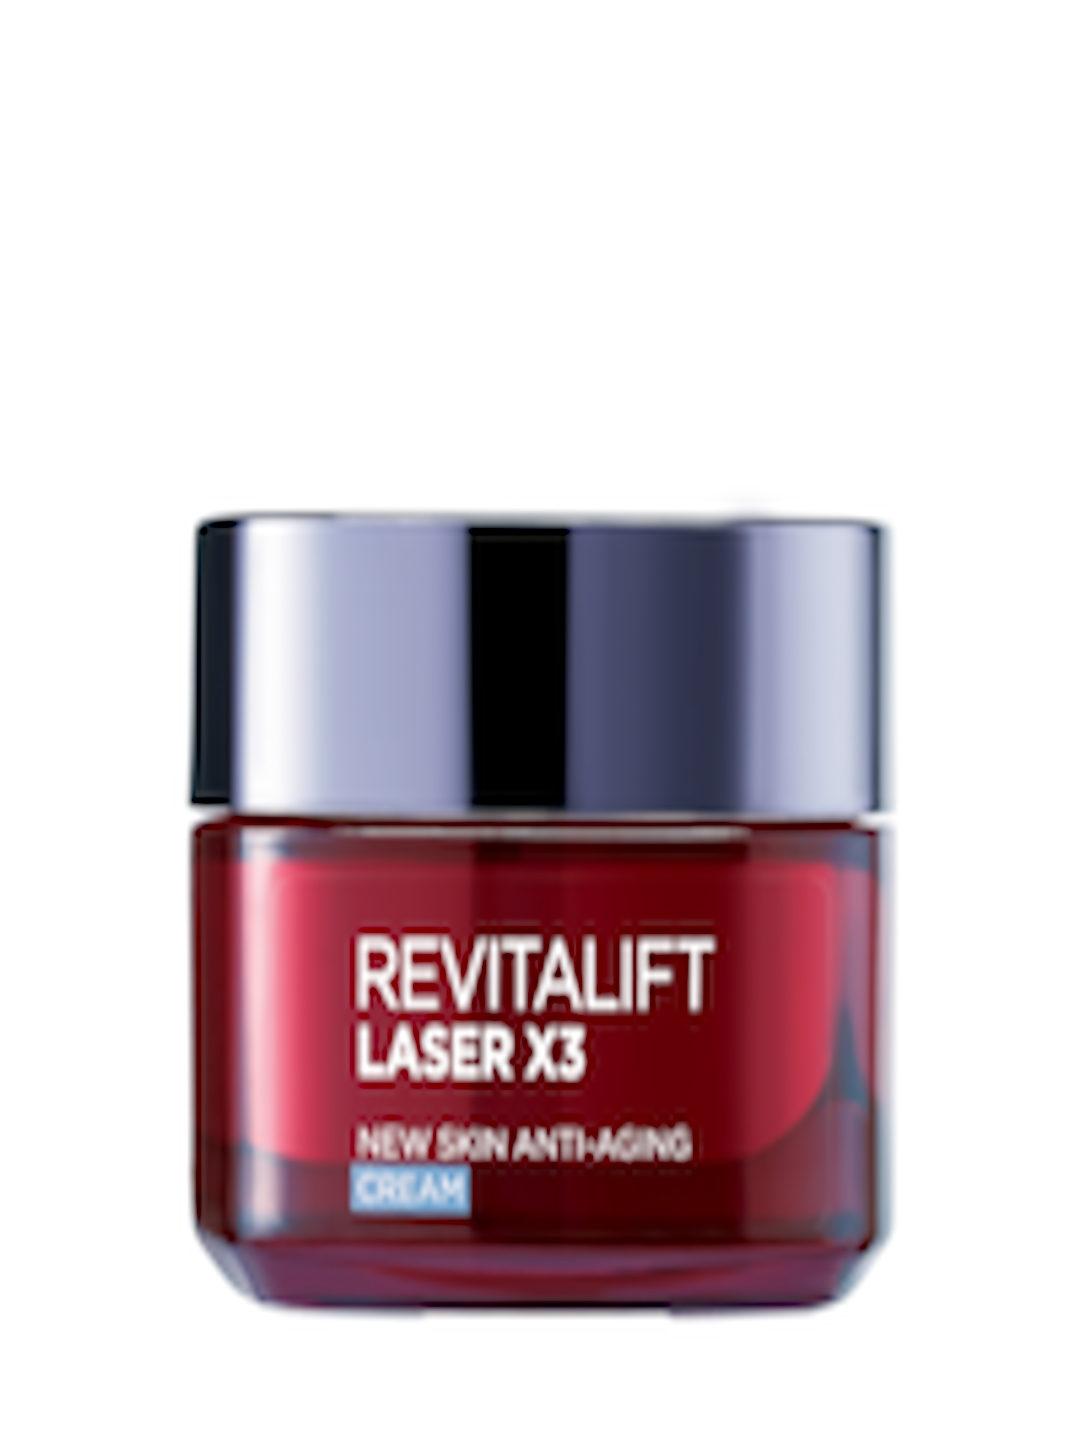 Buy LOreal Paris Revitalift Laser X3 Anti Ageing Cream -  - Personal Care for Women